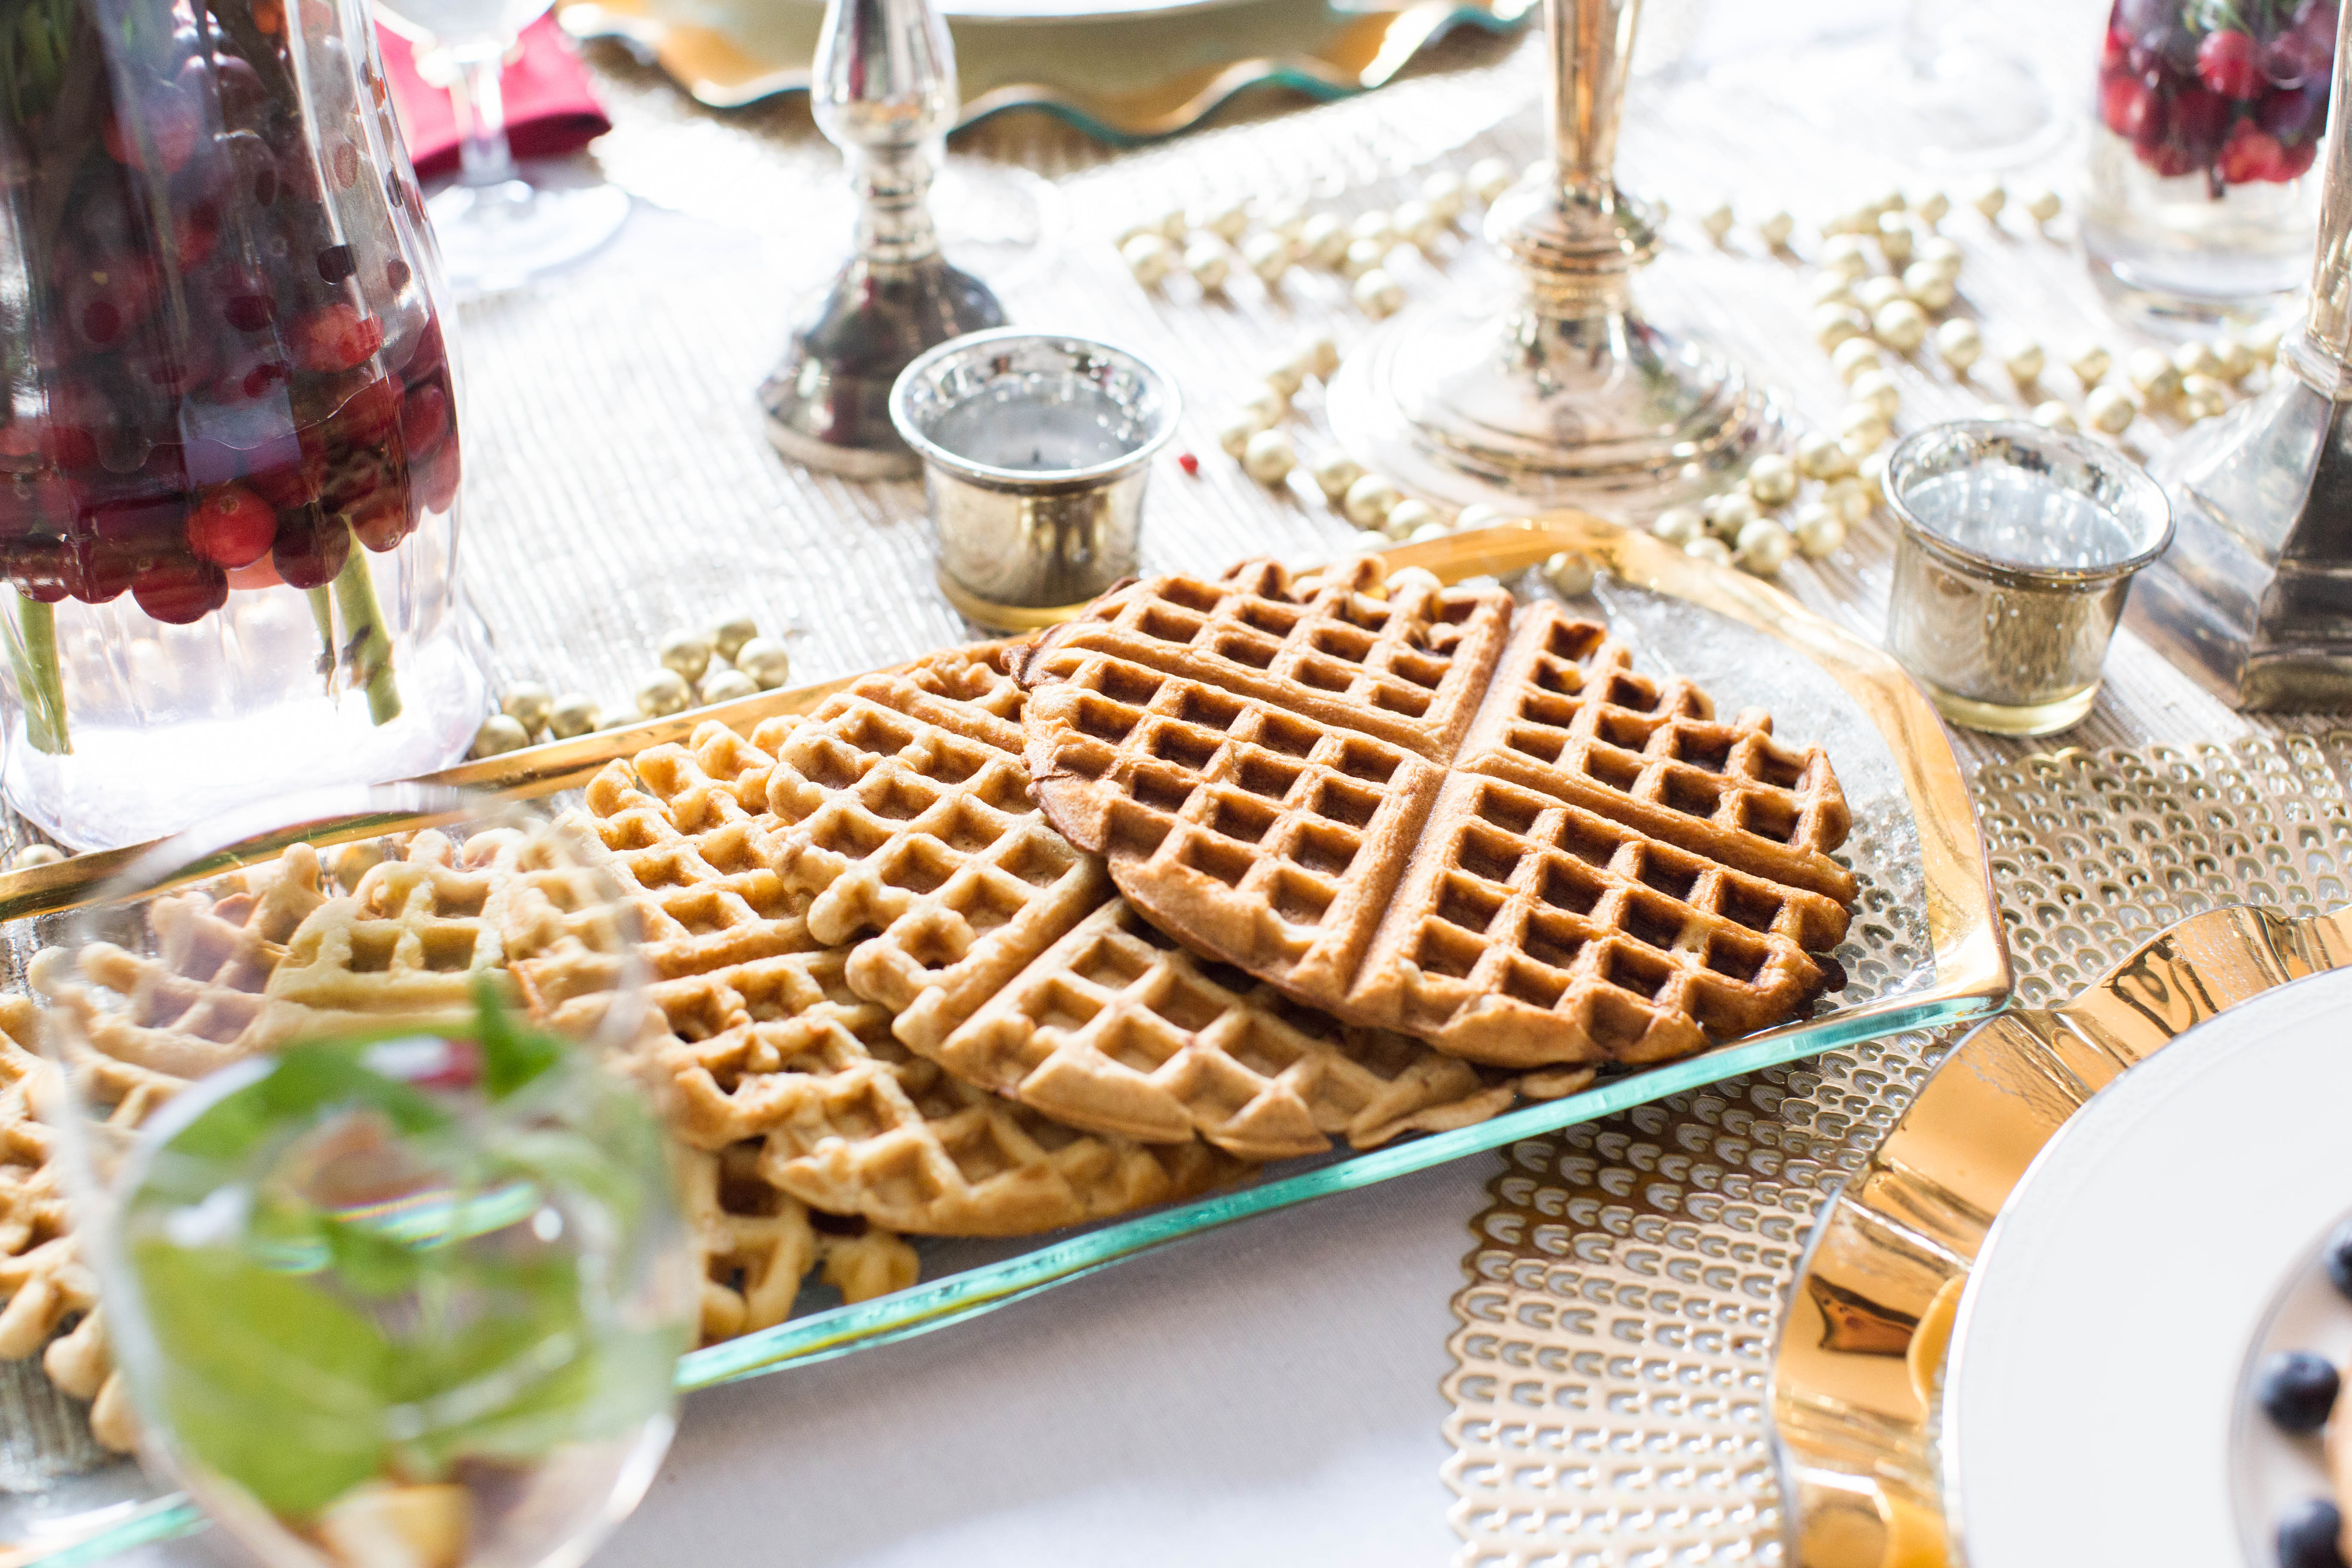 Holiday Brunch by popular North Carolina blogger Coffee Beans and Bobby Pins